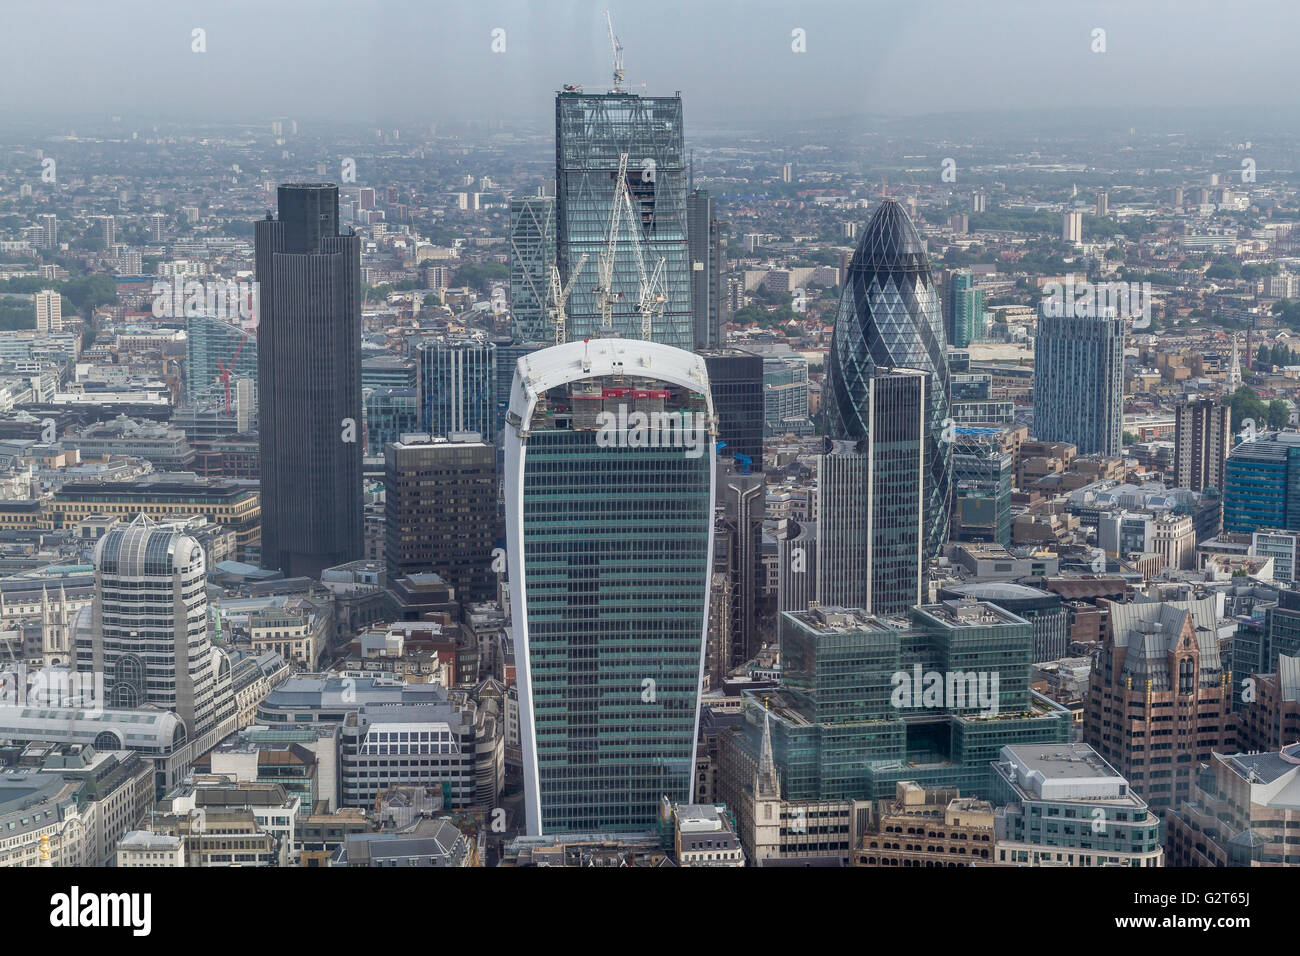 The City Of London from The Shard Viewing Platform ,London's highest viewing gallery offering superb views of - Stock Image